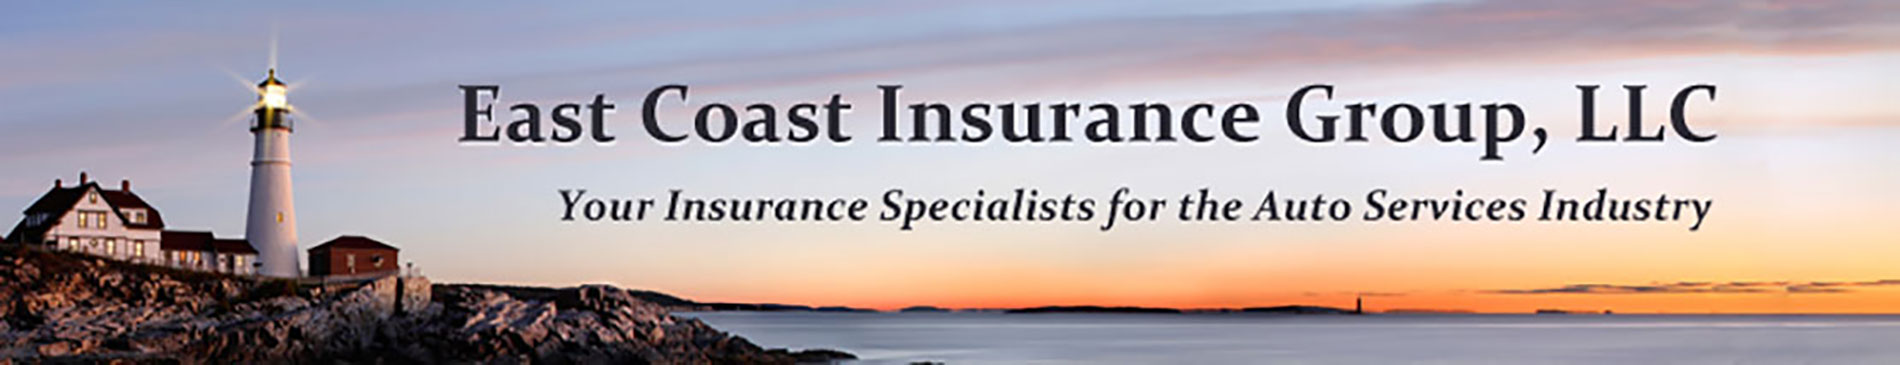 East Coast Insurance Group LLC